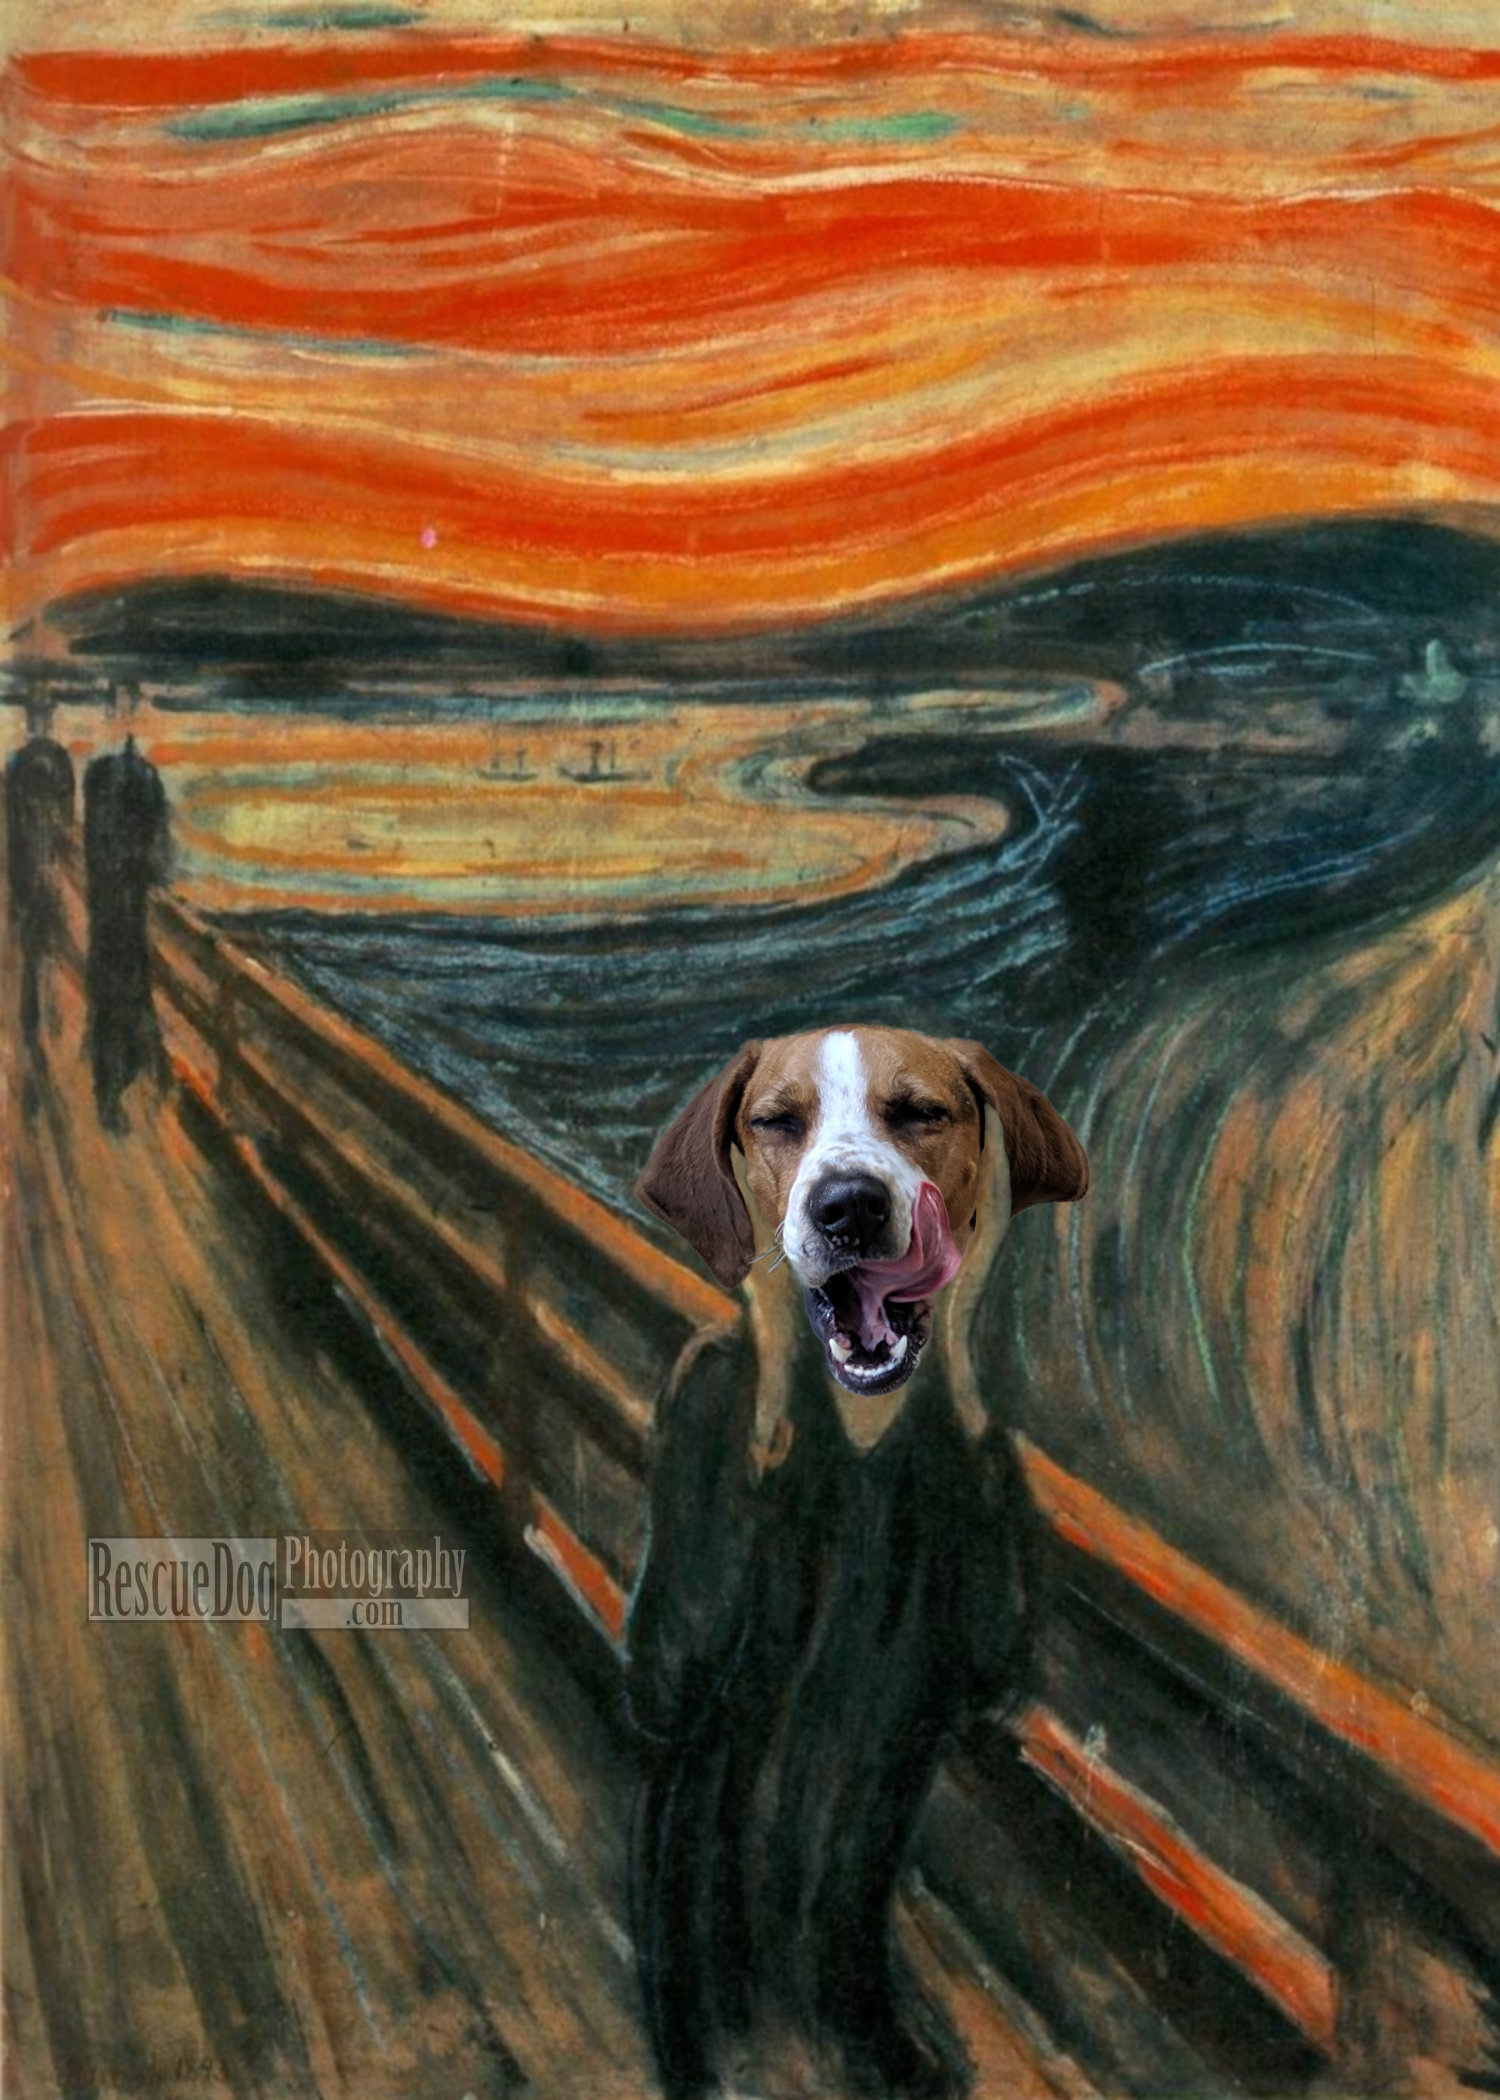 Rescue Dog Photography The Scream